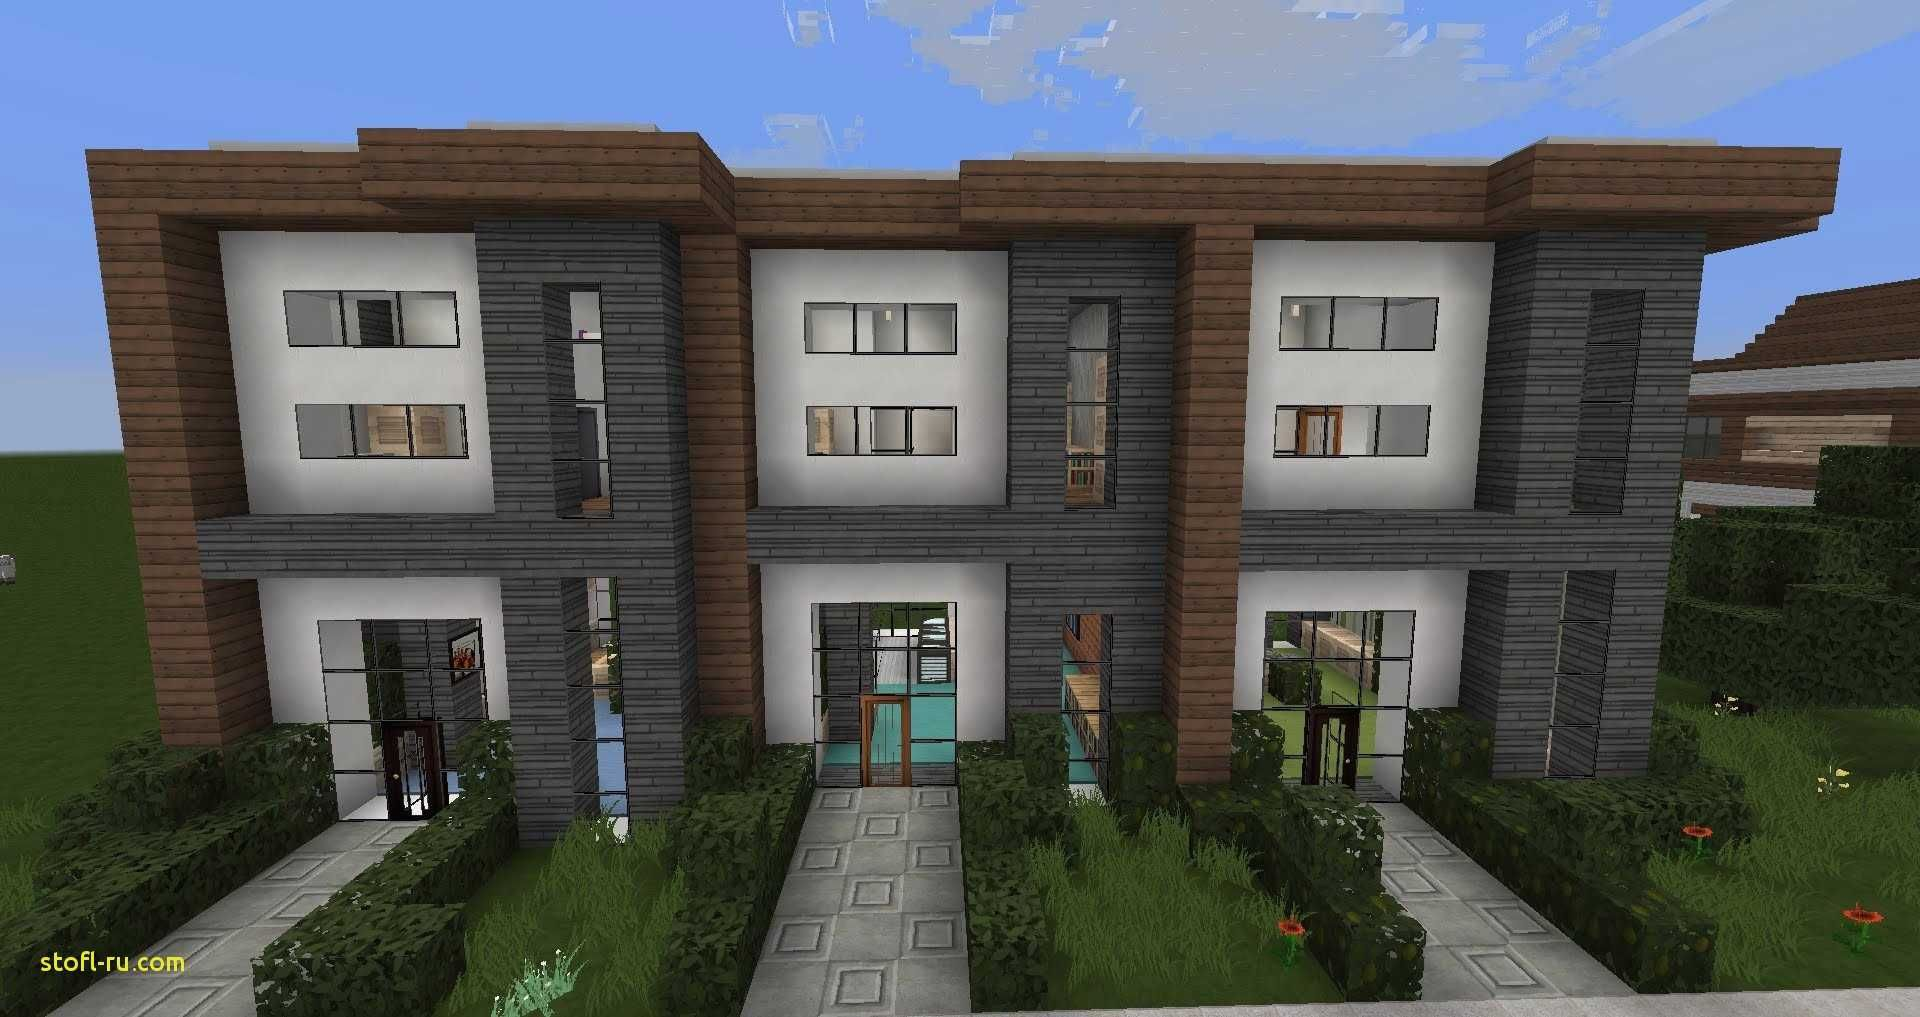 Mansion Huge Minecraft House Ideas Elegant Minecraft Mansion Floor Plan Fresh Minecraf Minecraft Modern House Blueprints Minecraft Modern Minecraft Small House